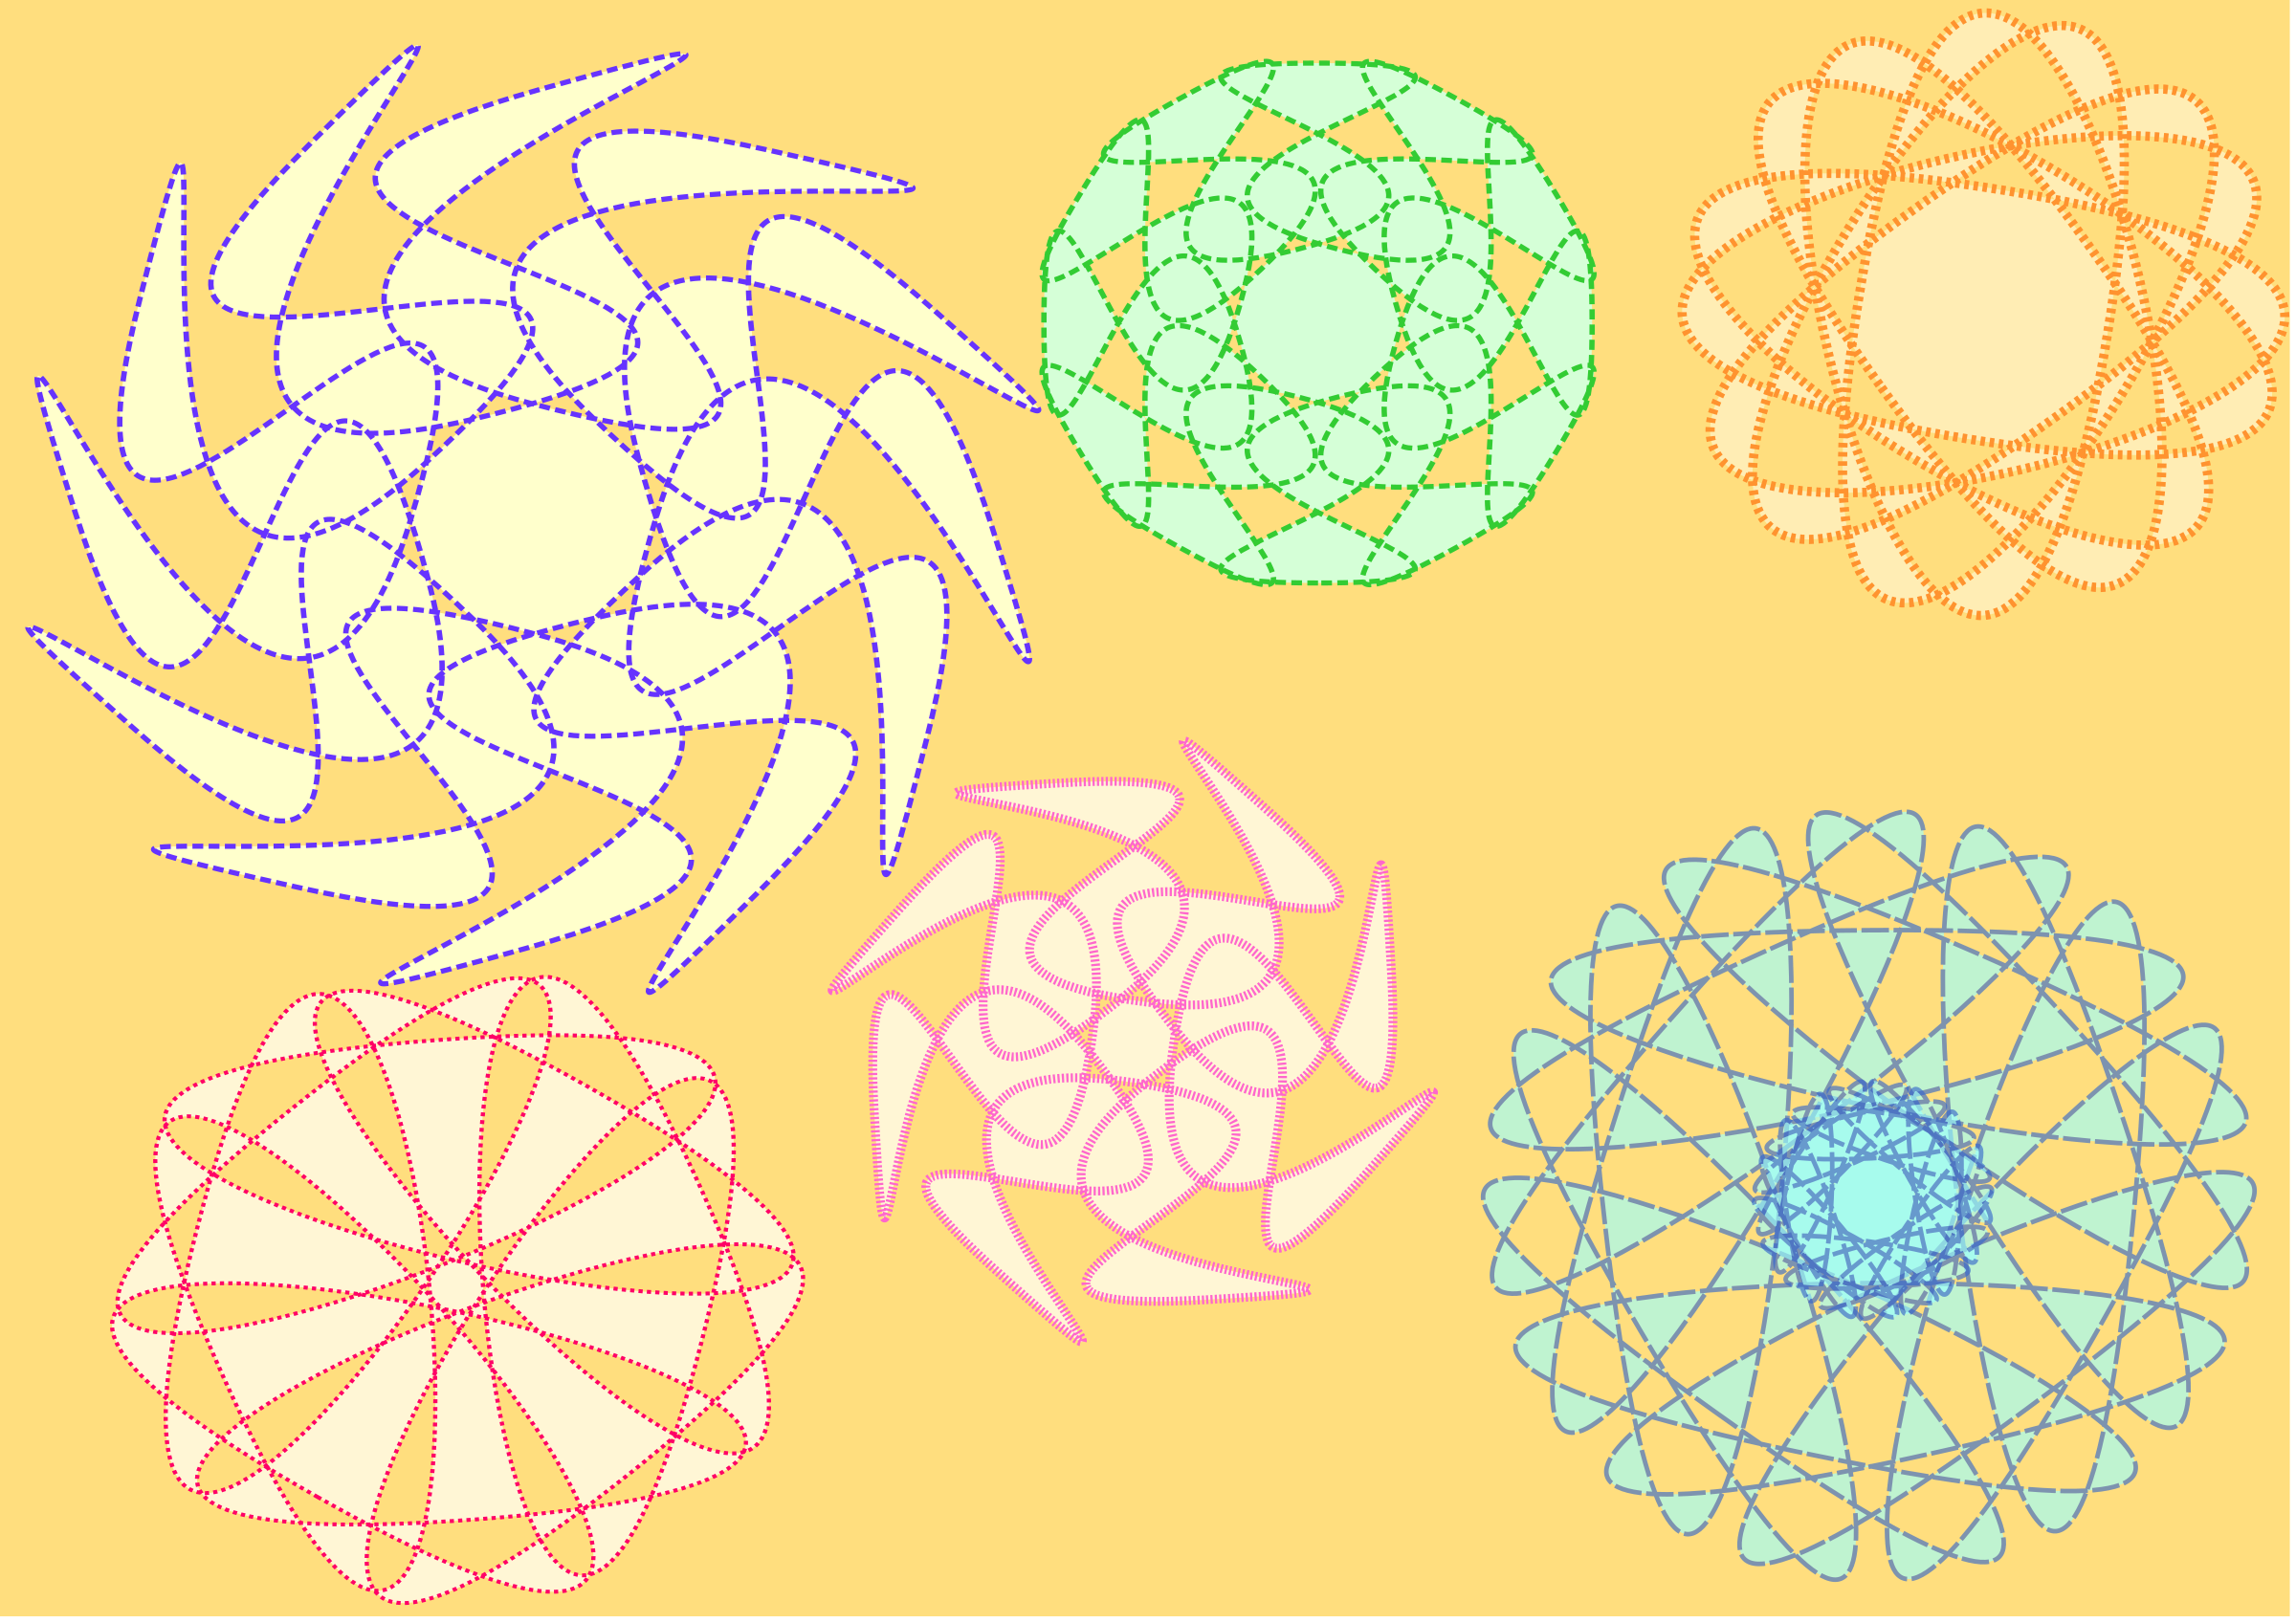 Decorative Circles by OlKu